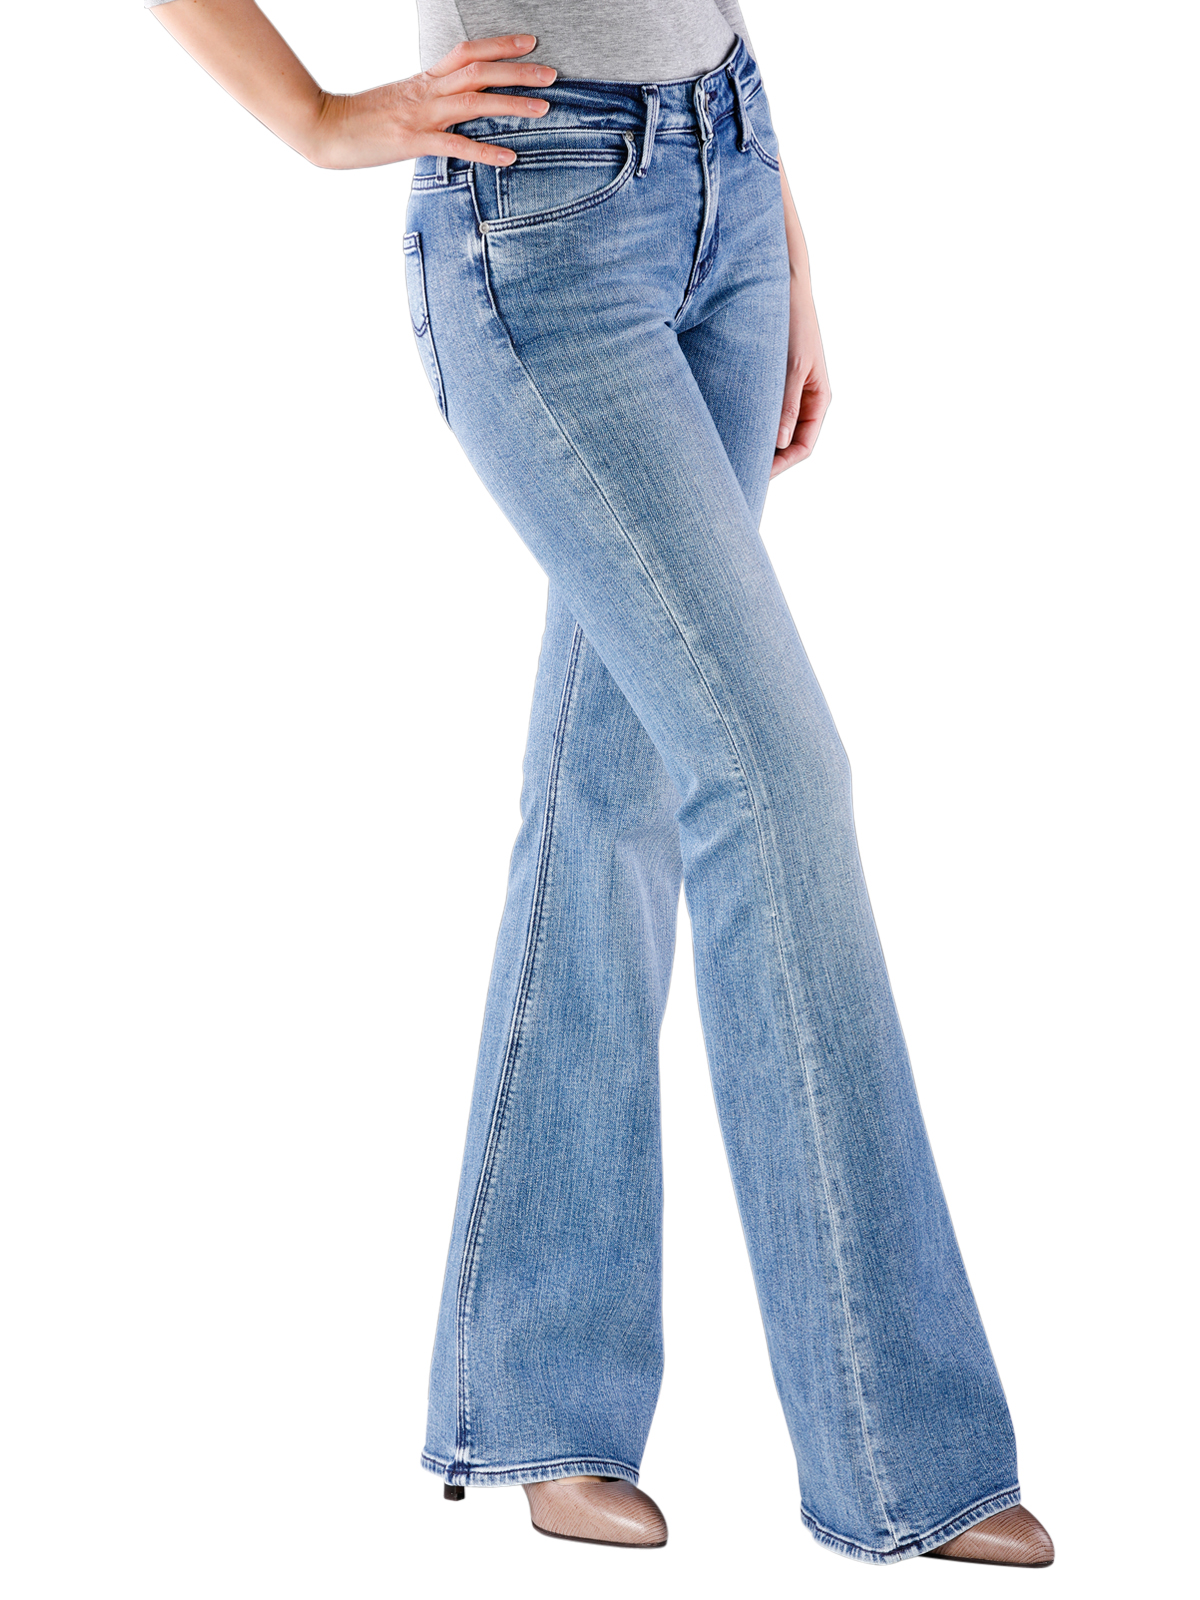 Lee Chaffee Pants cool daze W25L31